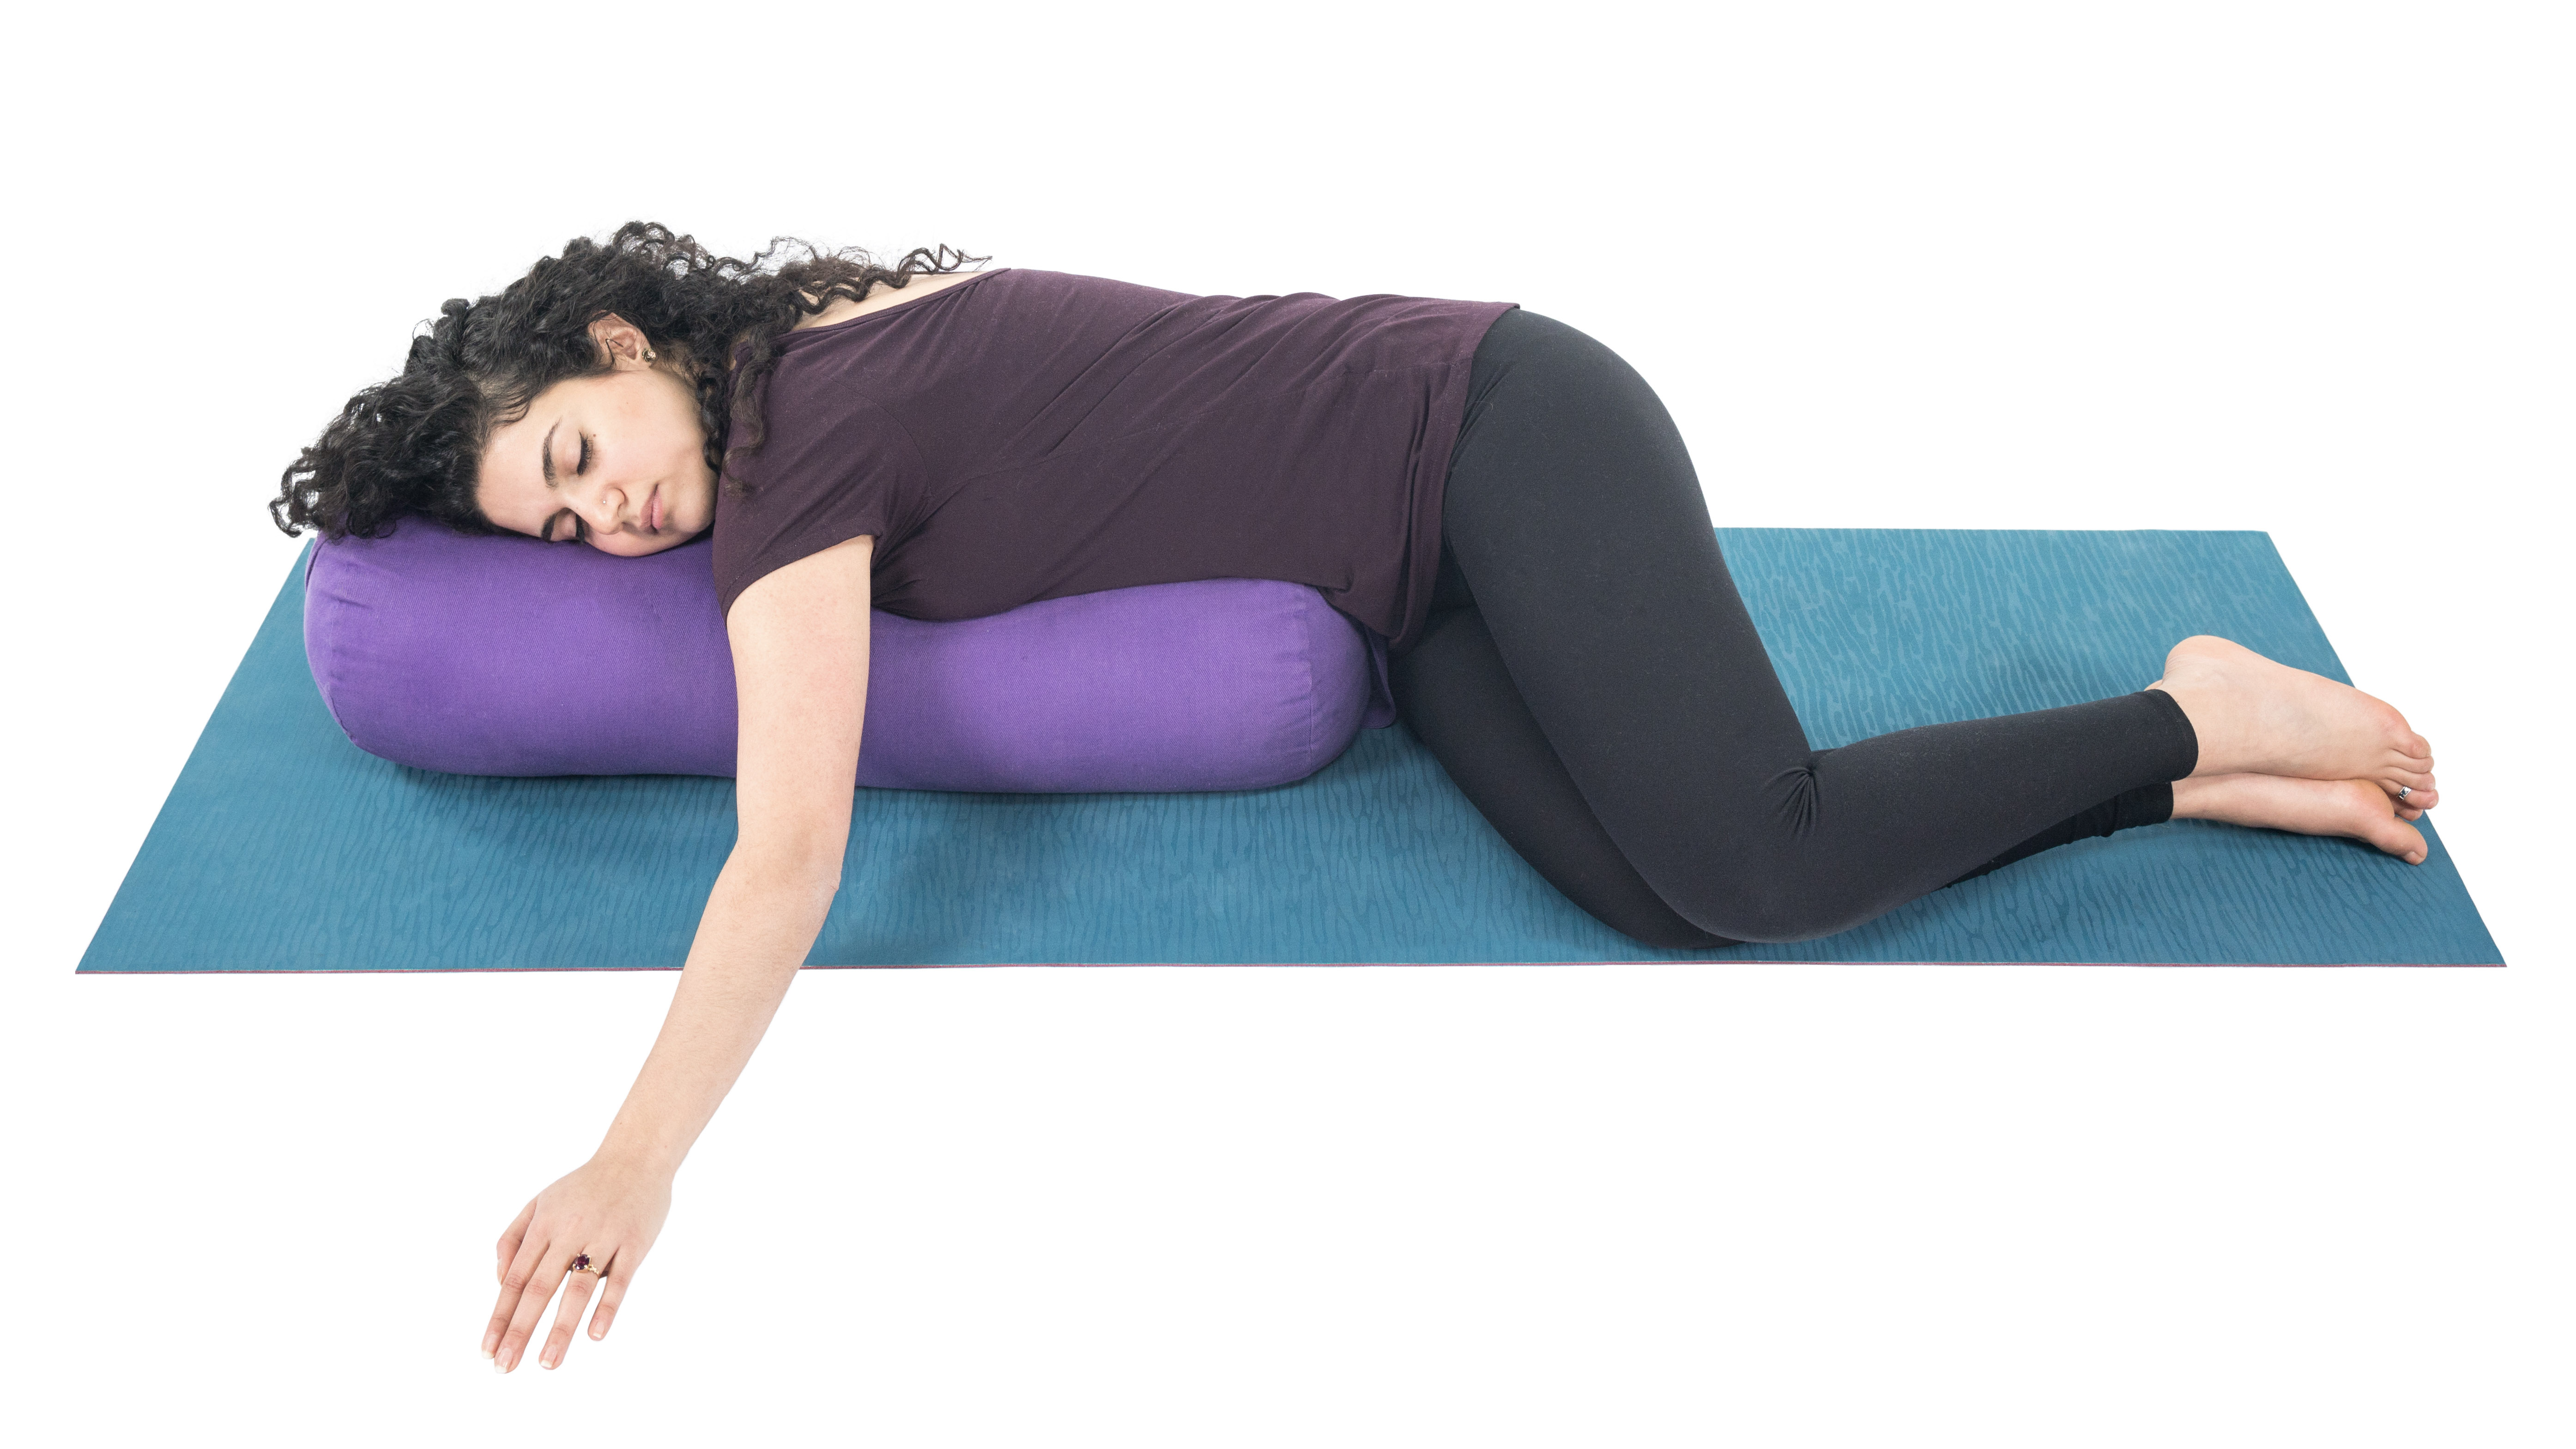 Restorative twist, yoga with props, rest and restore, pain relief, deep rest